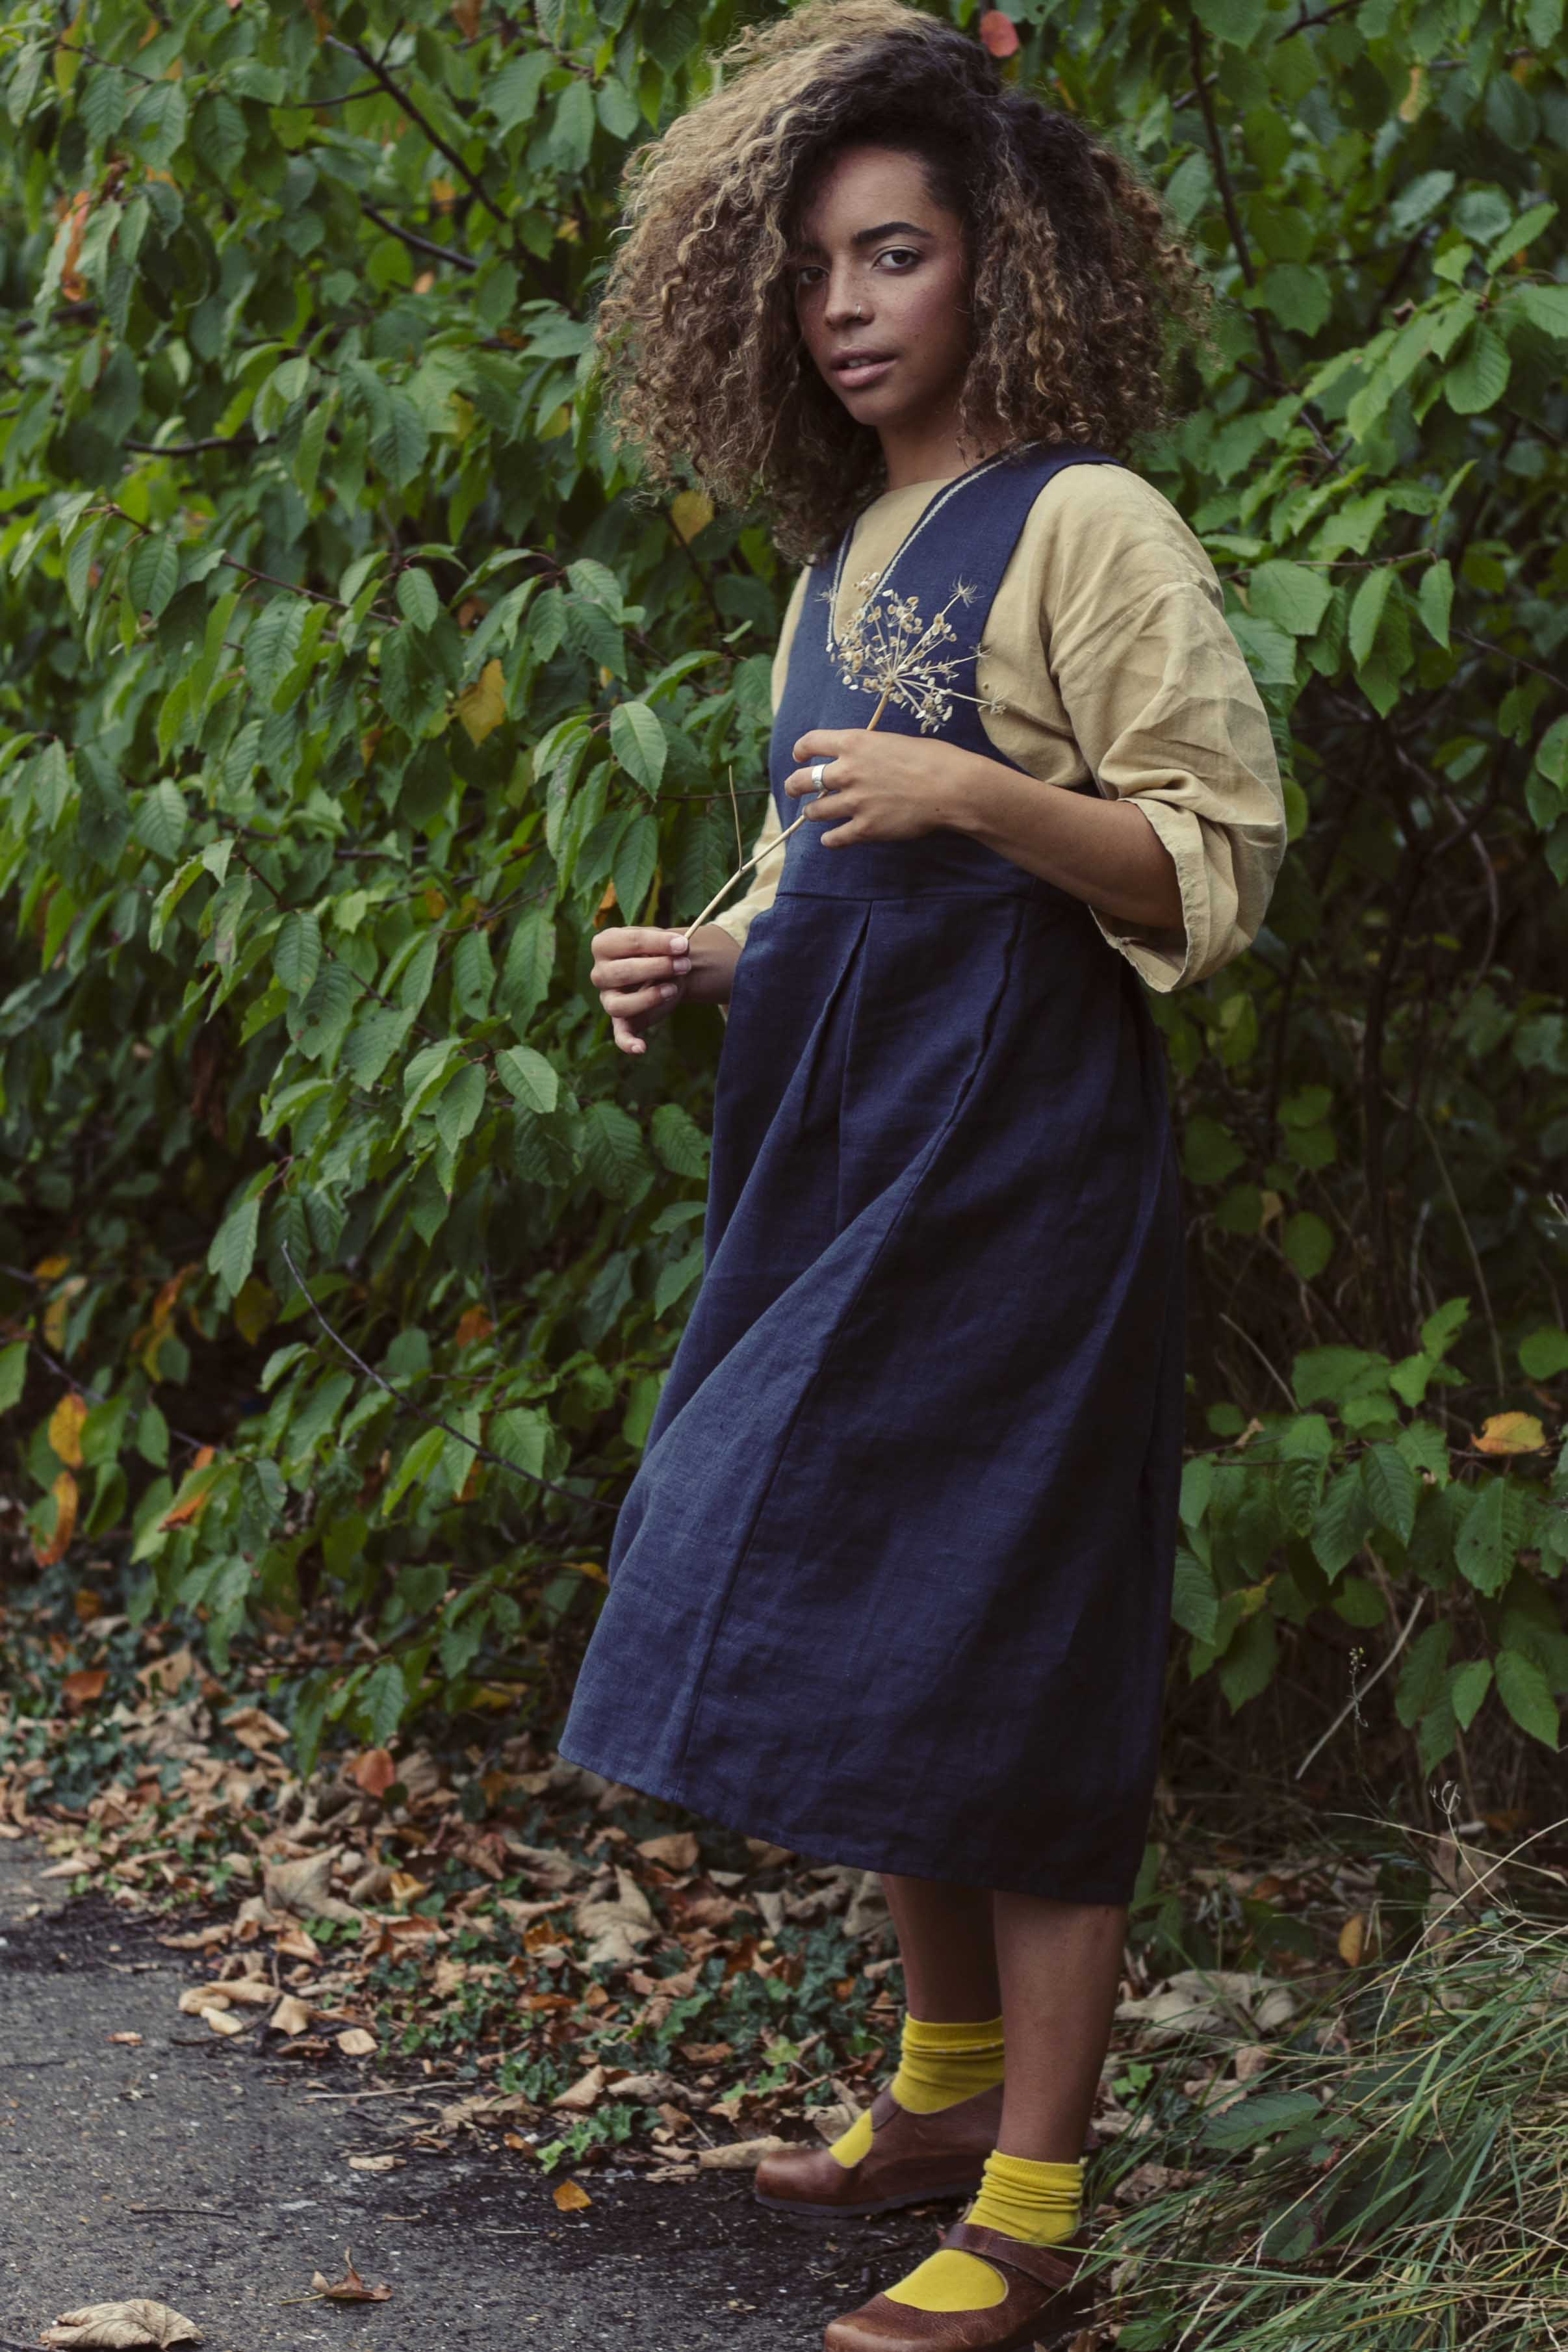 100% Linen Pinafore Dress with hand embroidery